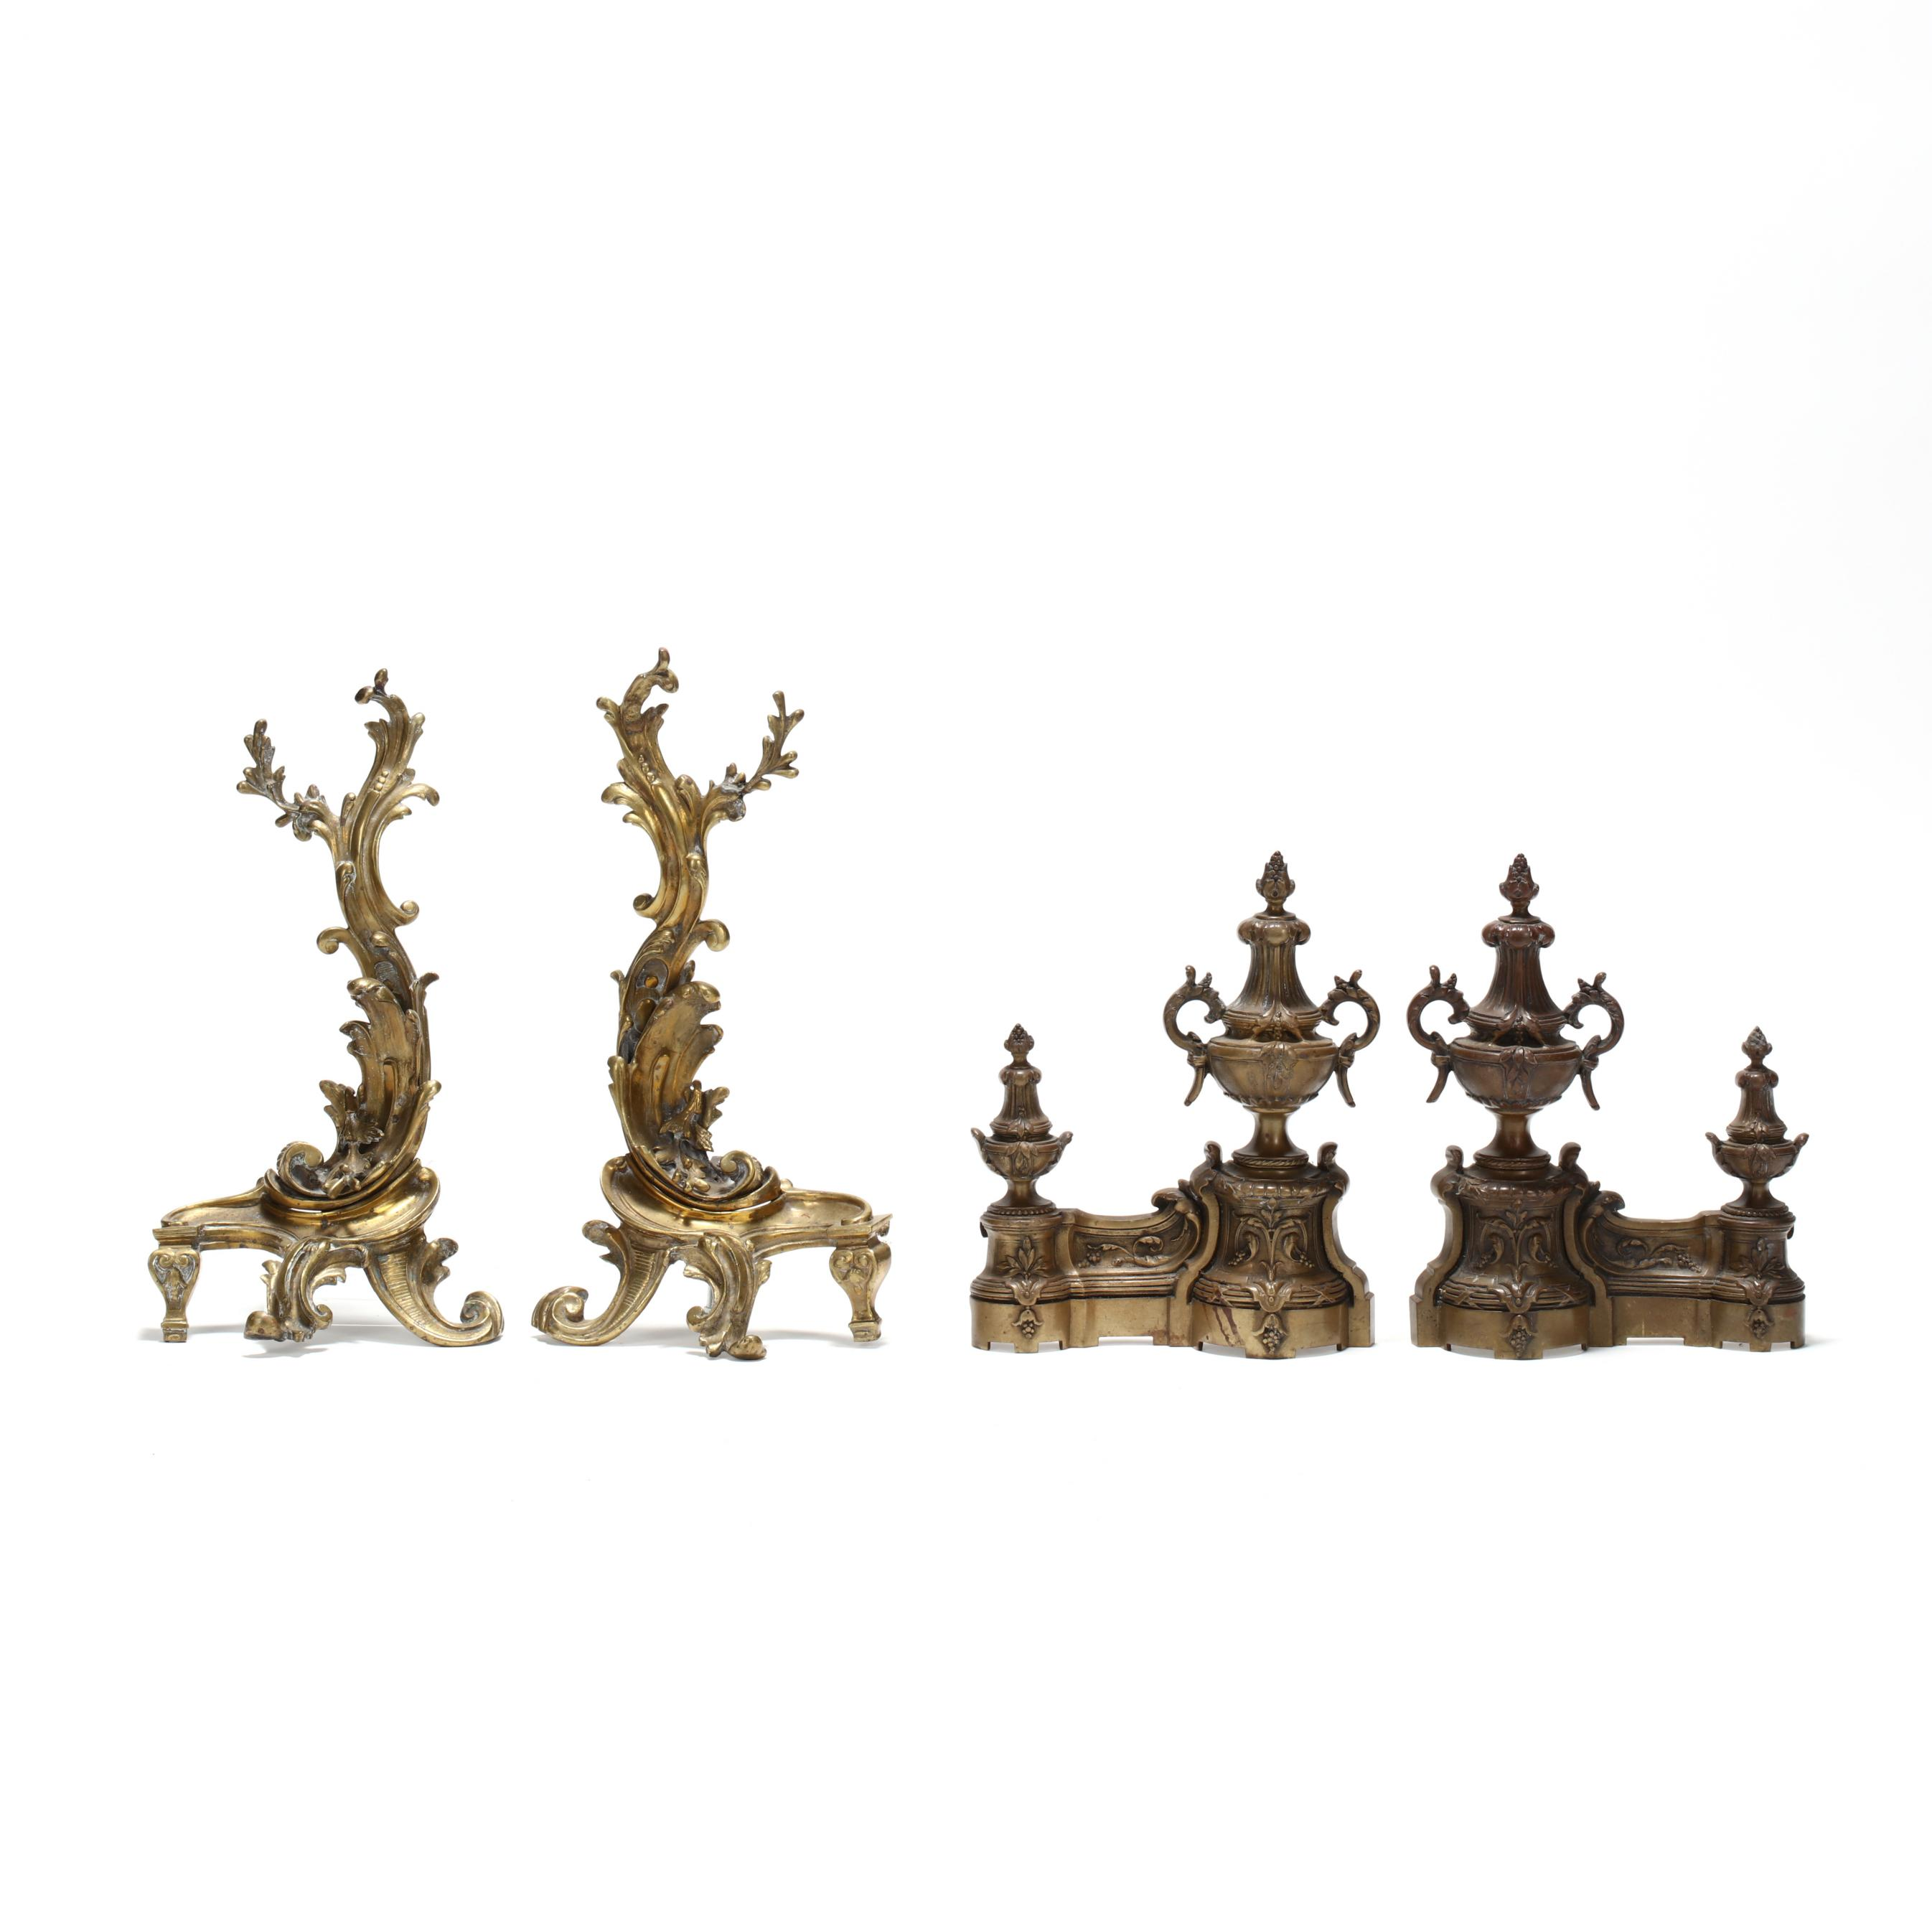 two-pair-of-antique-brass-chenets